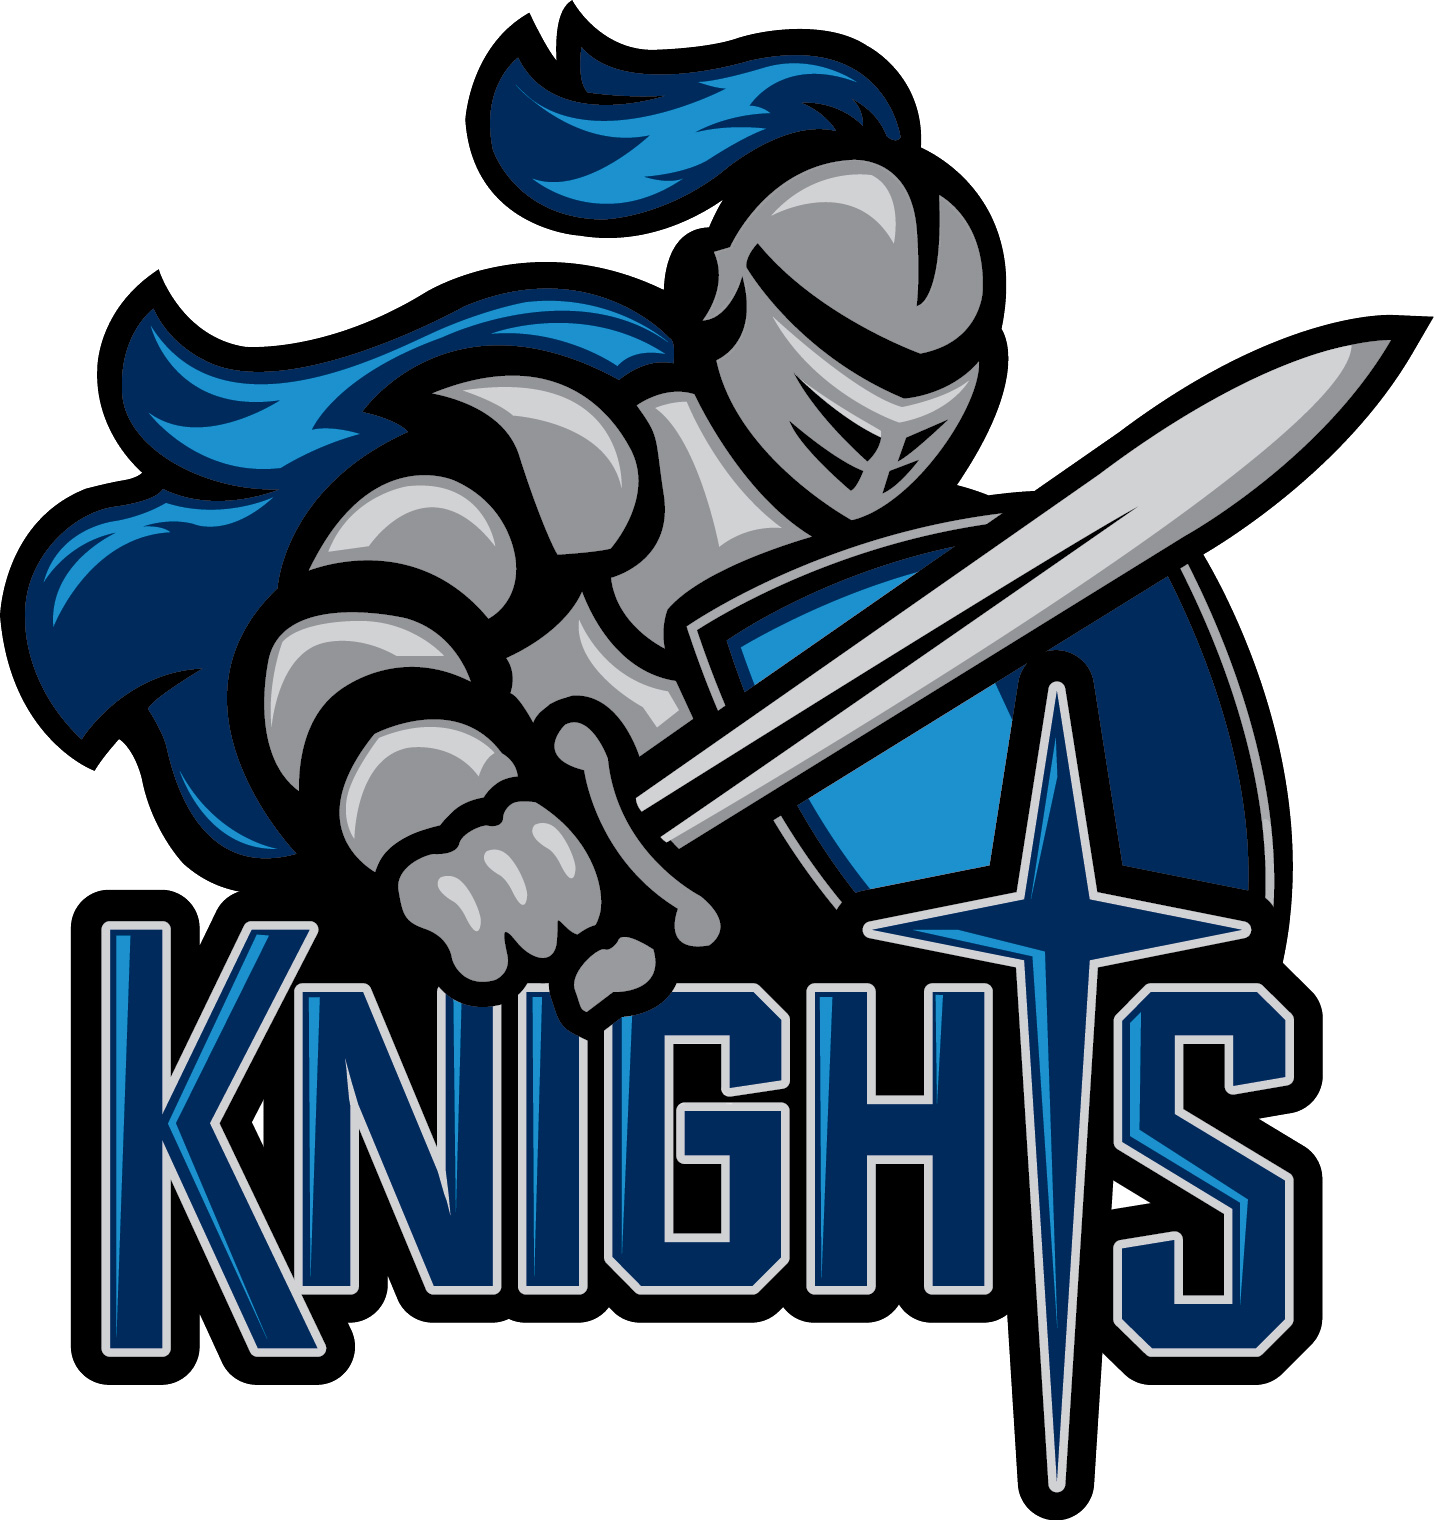 kinghts logo | Sports - SiouxlandMatters | Man cave-sports ...